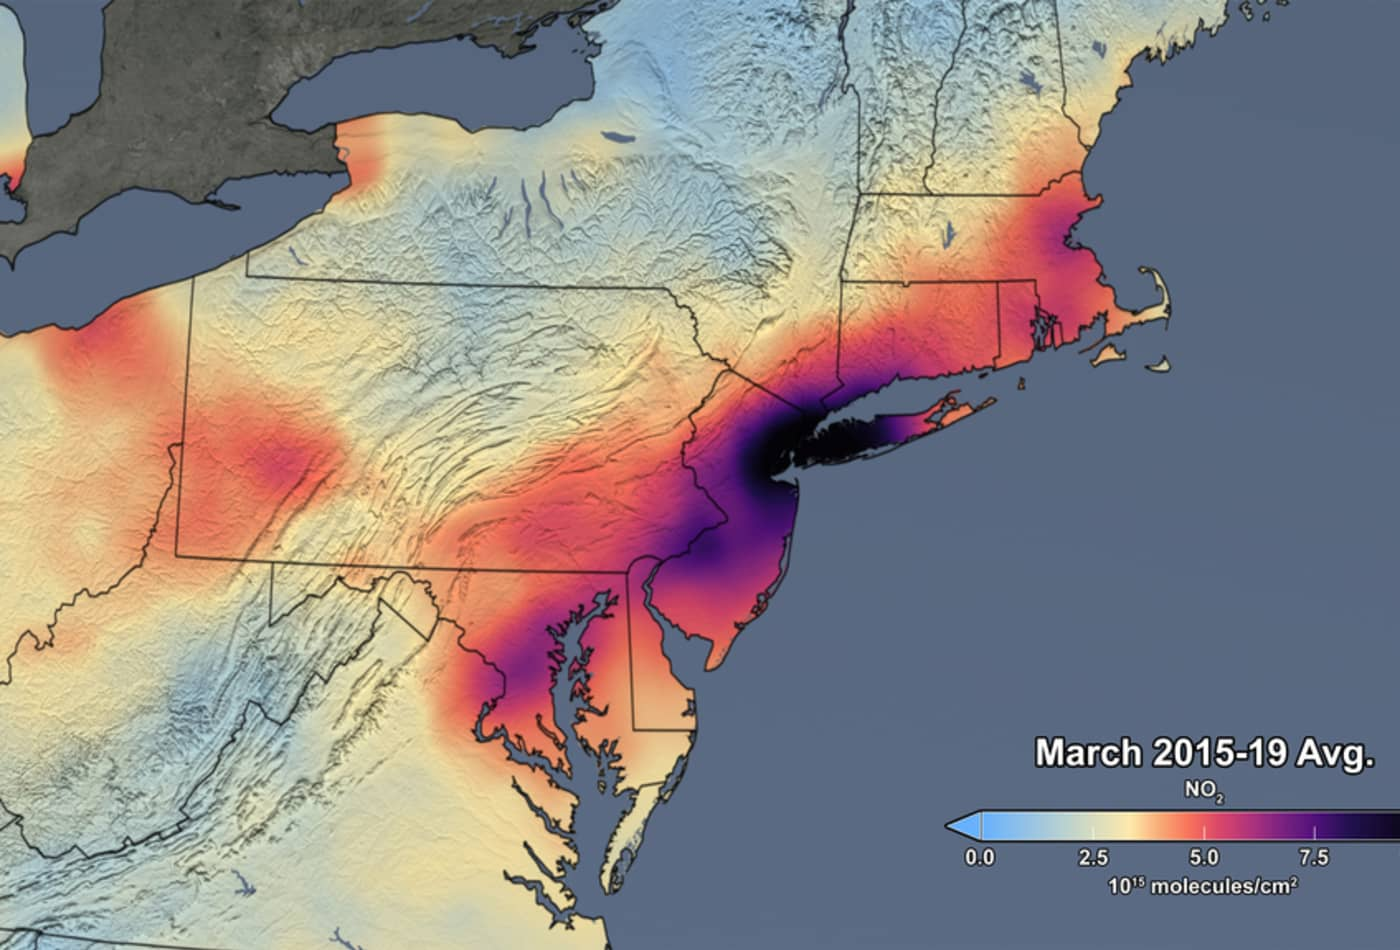 Air pollution drops 30% in Northeast US as coronavirus lockdown slows travel: NASA